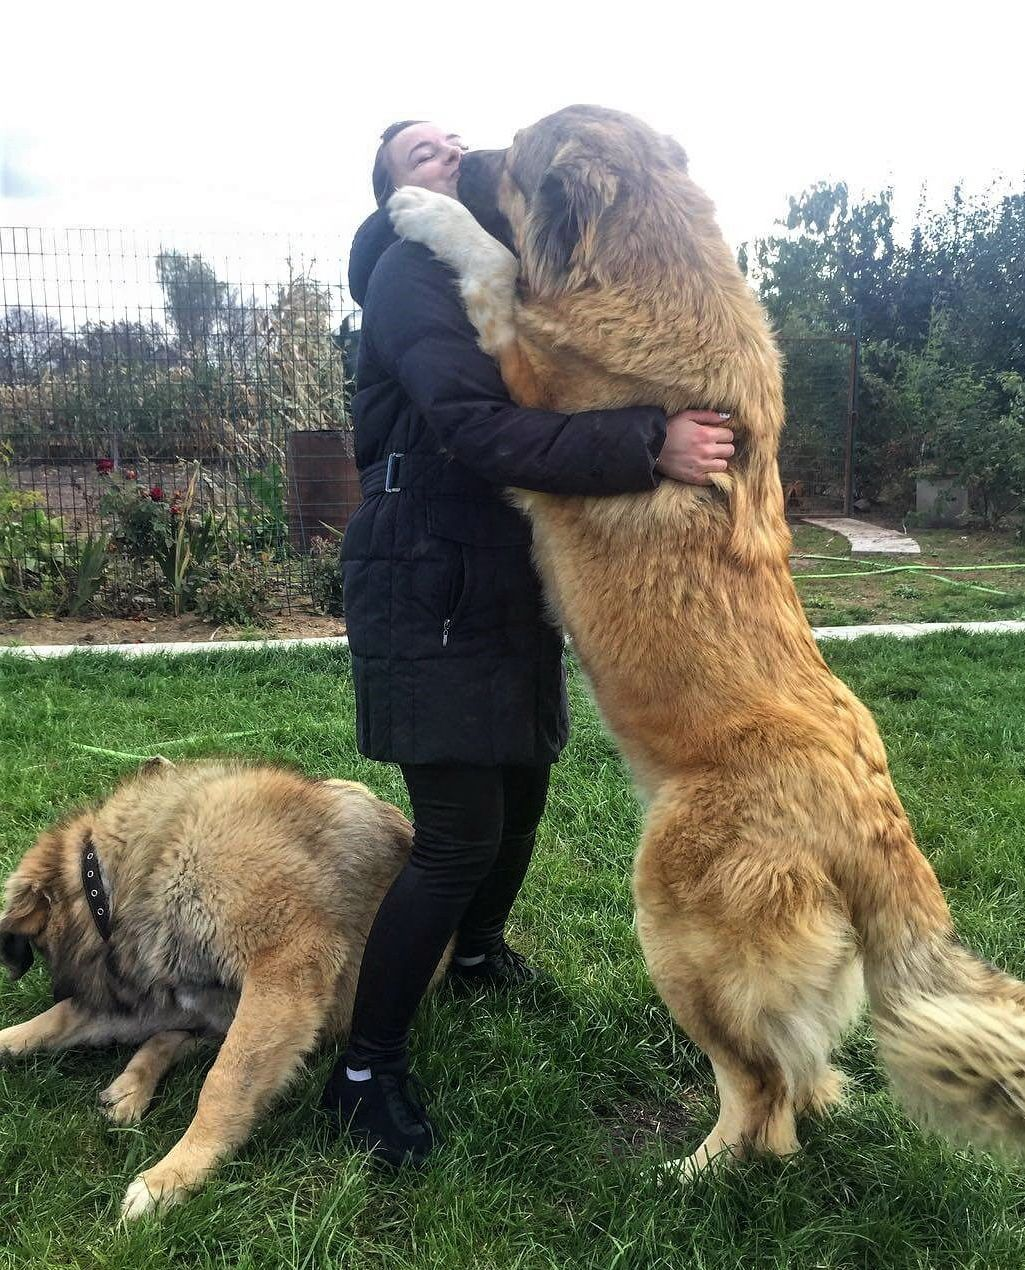 Caucasian Mountain Shepherd For Sale >> How Much Would Caucasian Mountain Dog Cost Puppy Price Mountain